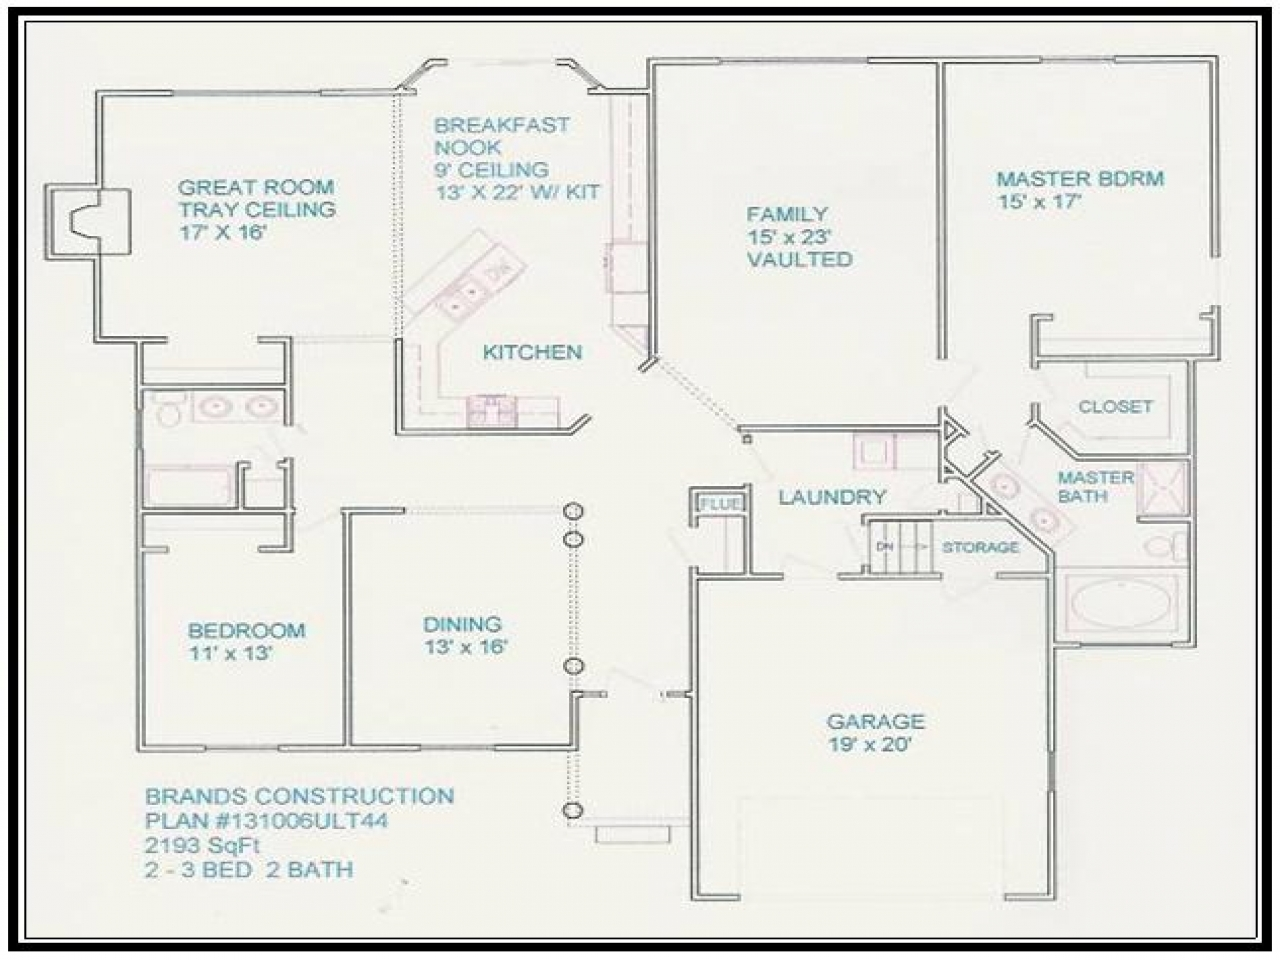 create free floor plans free house floor plans and designs design your own floor plan download house plans treesranch com 5201